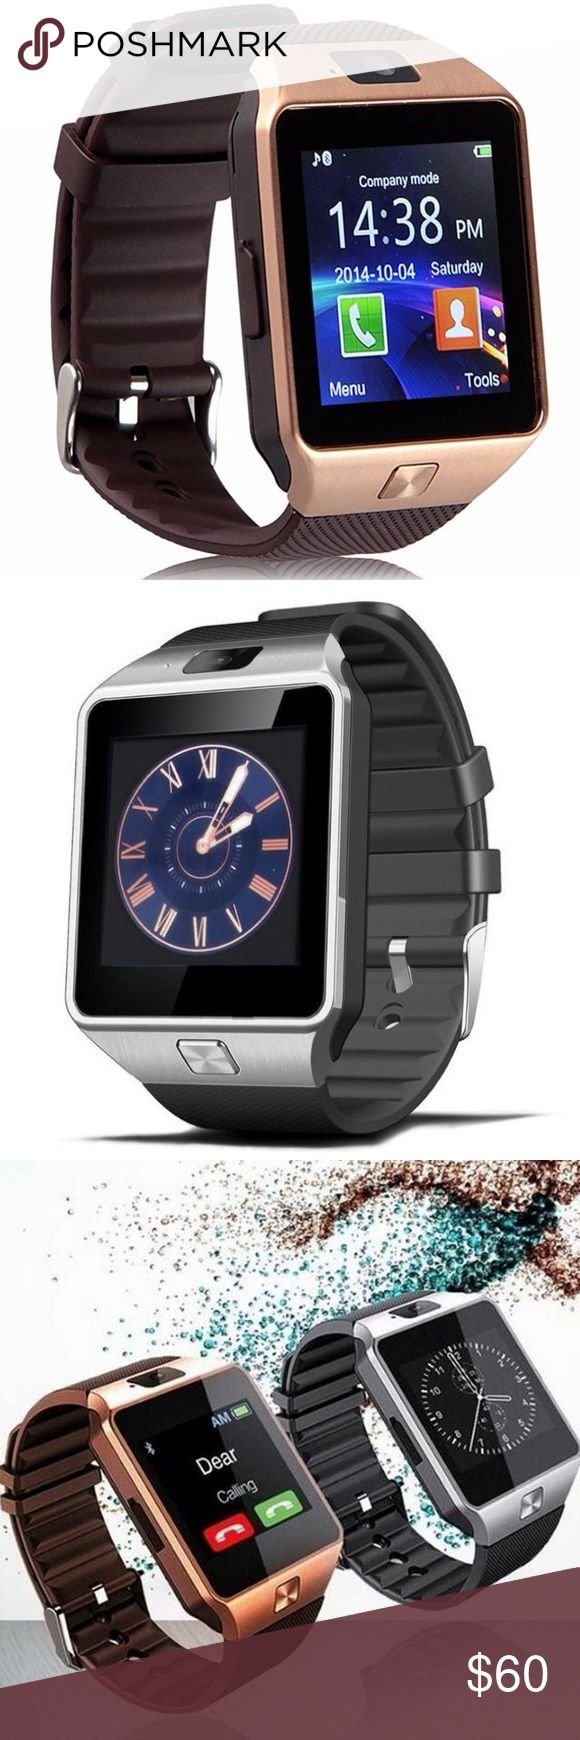 DZ09 Smartwatch for Android and iPhone Bluetooth Both colors still available. Beautiful smart watch - fully functional. Great for tracking sleep and exercise. Call or text straight from your watch! Brand new in original box. Please let me know what color you prefer when ordering. Accessories Watches